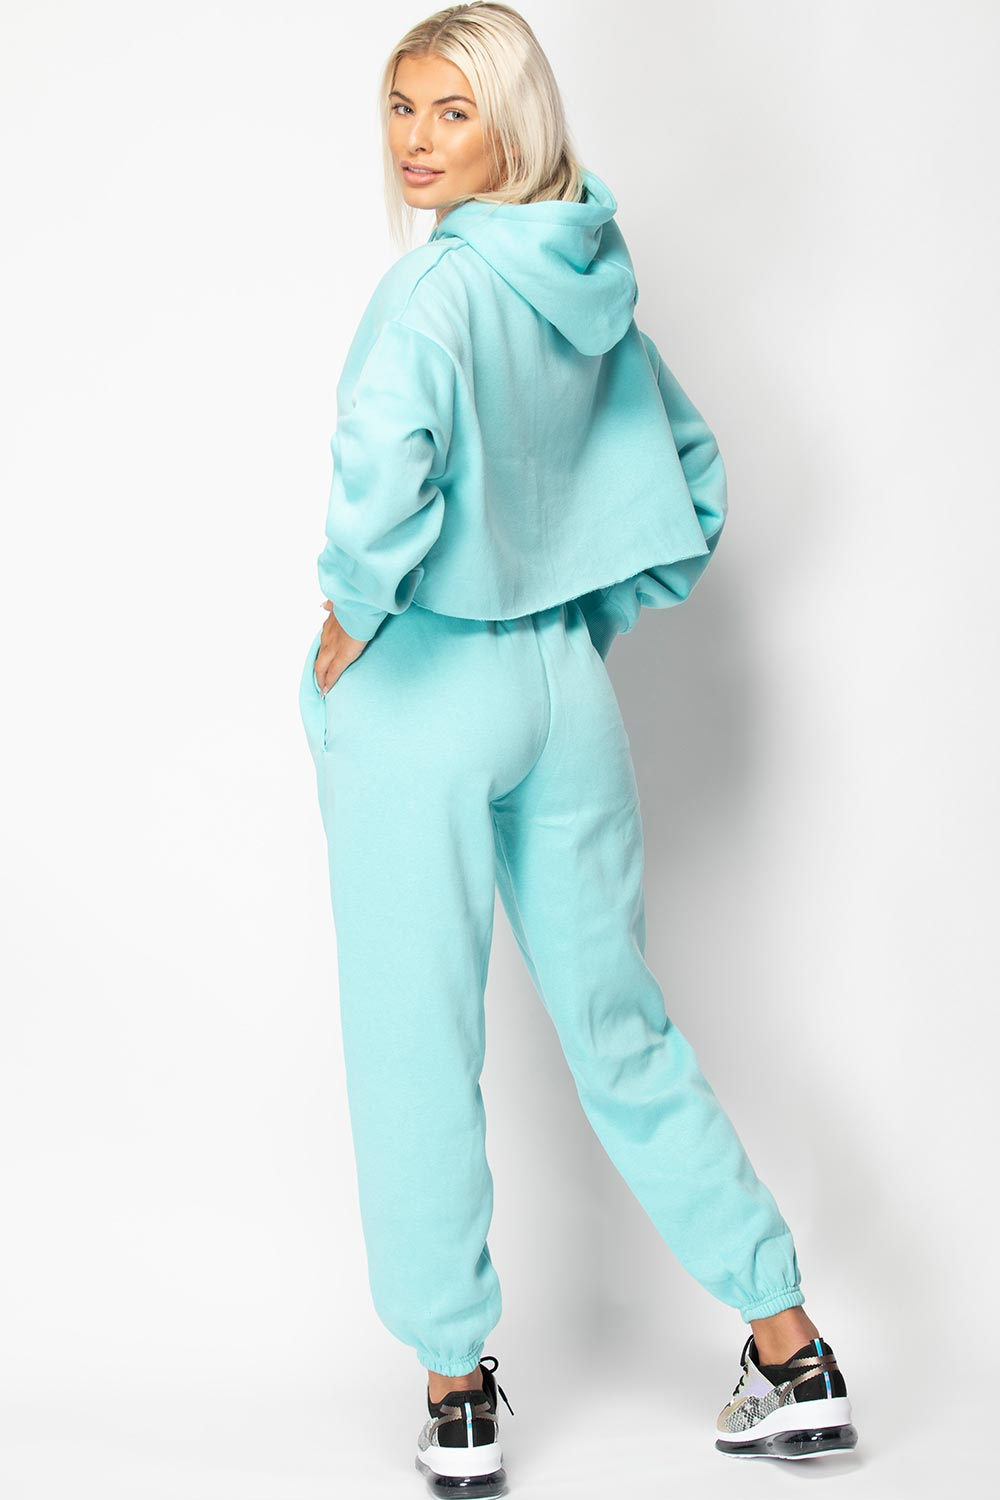 turquoise loungewear set womens